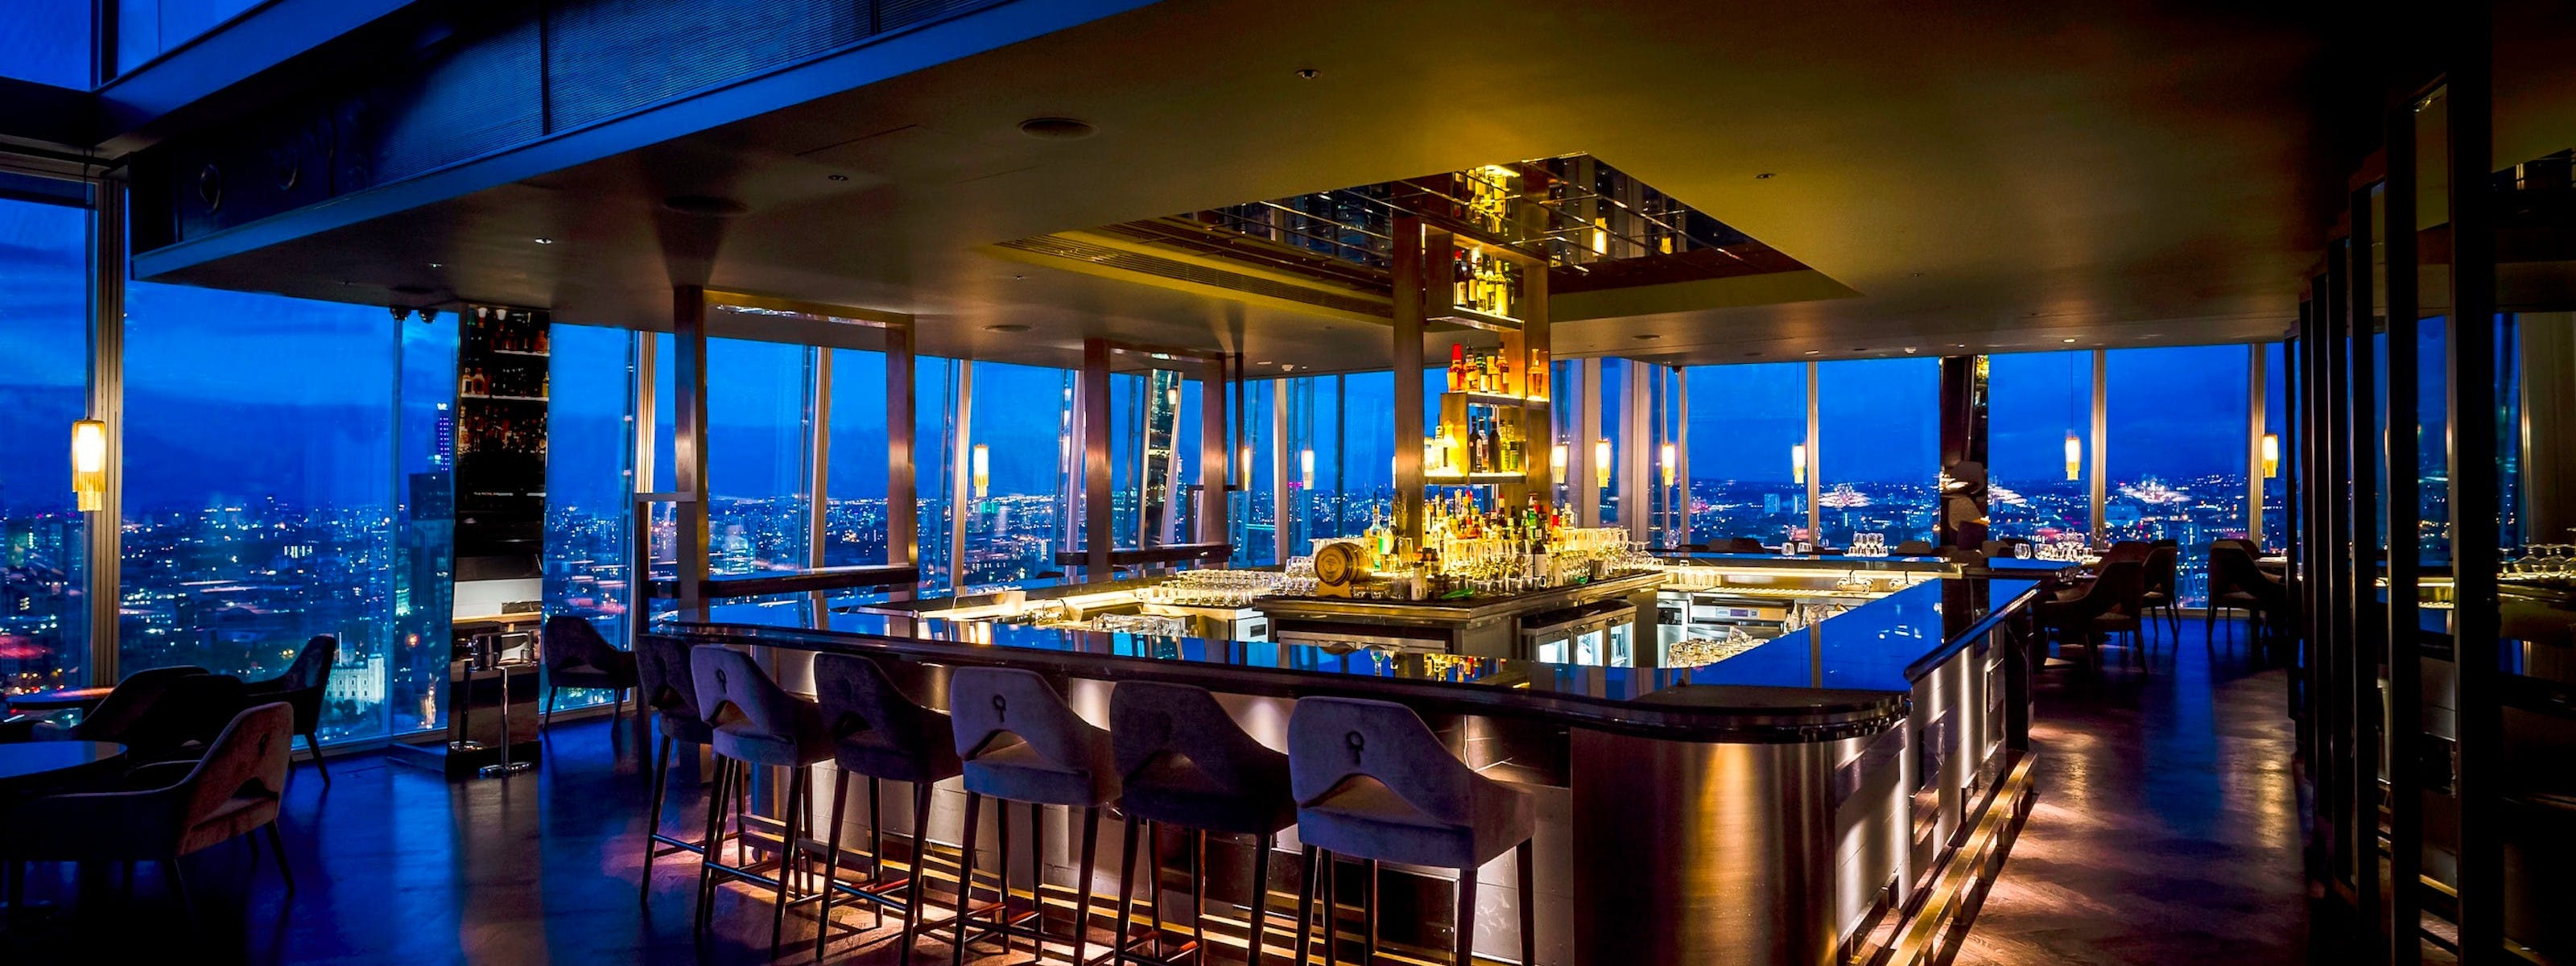 The Best Places To Eat And Drink Near London Bridge London The Infatuation